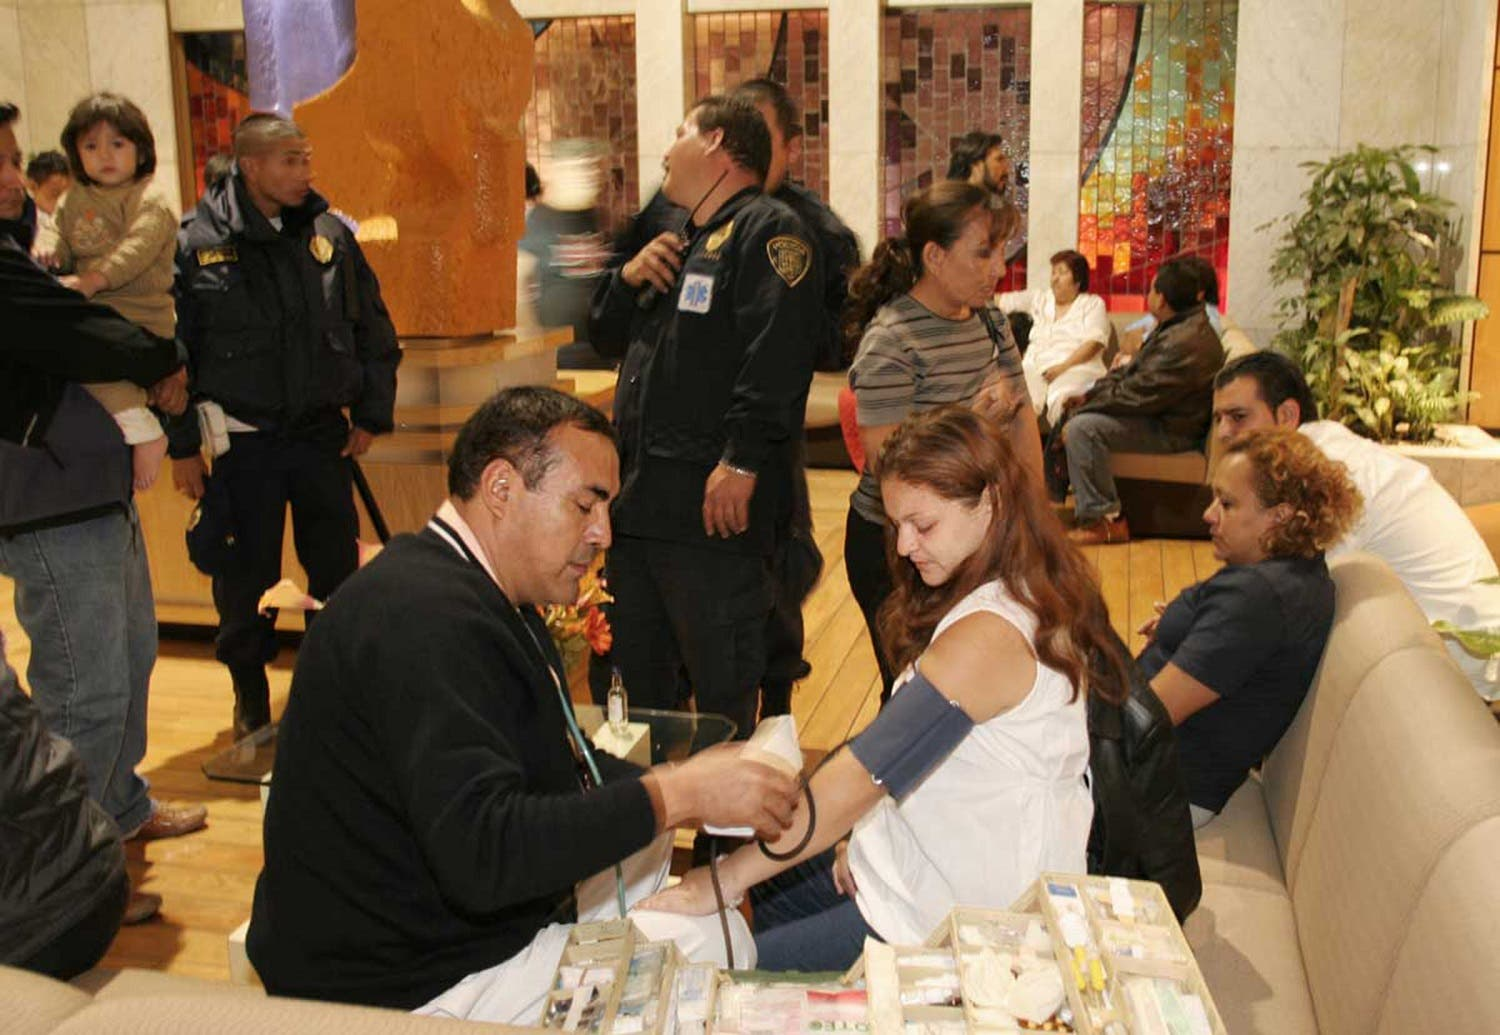 A woman is attended by a paramedic in the lobby of her hotel following a 5.4 magnitude earthquake in Acapulco, Mexico, on April 13, 2007. (AP)